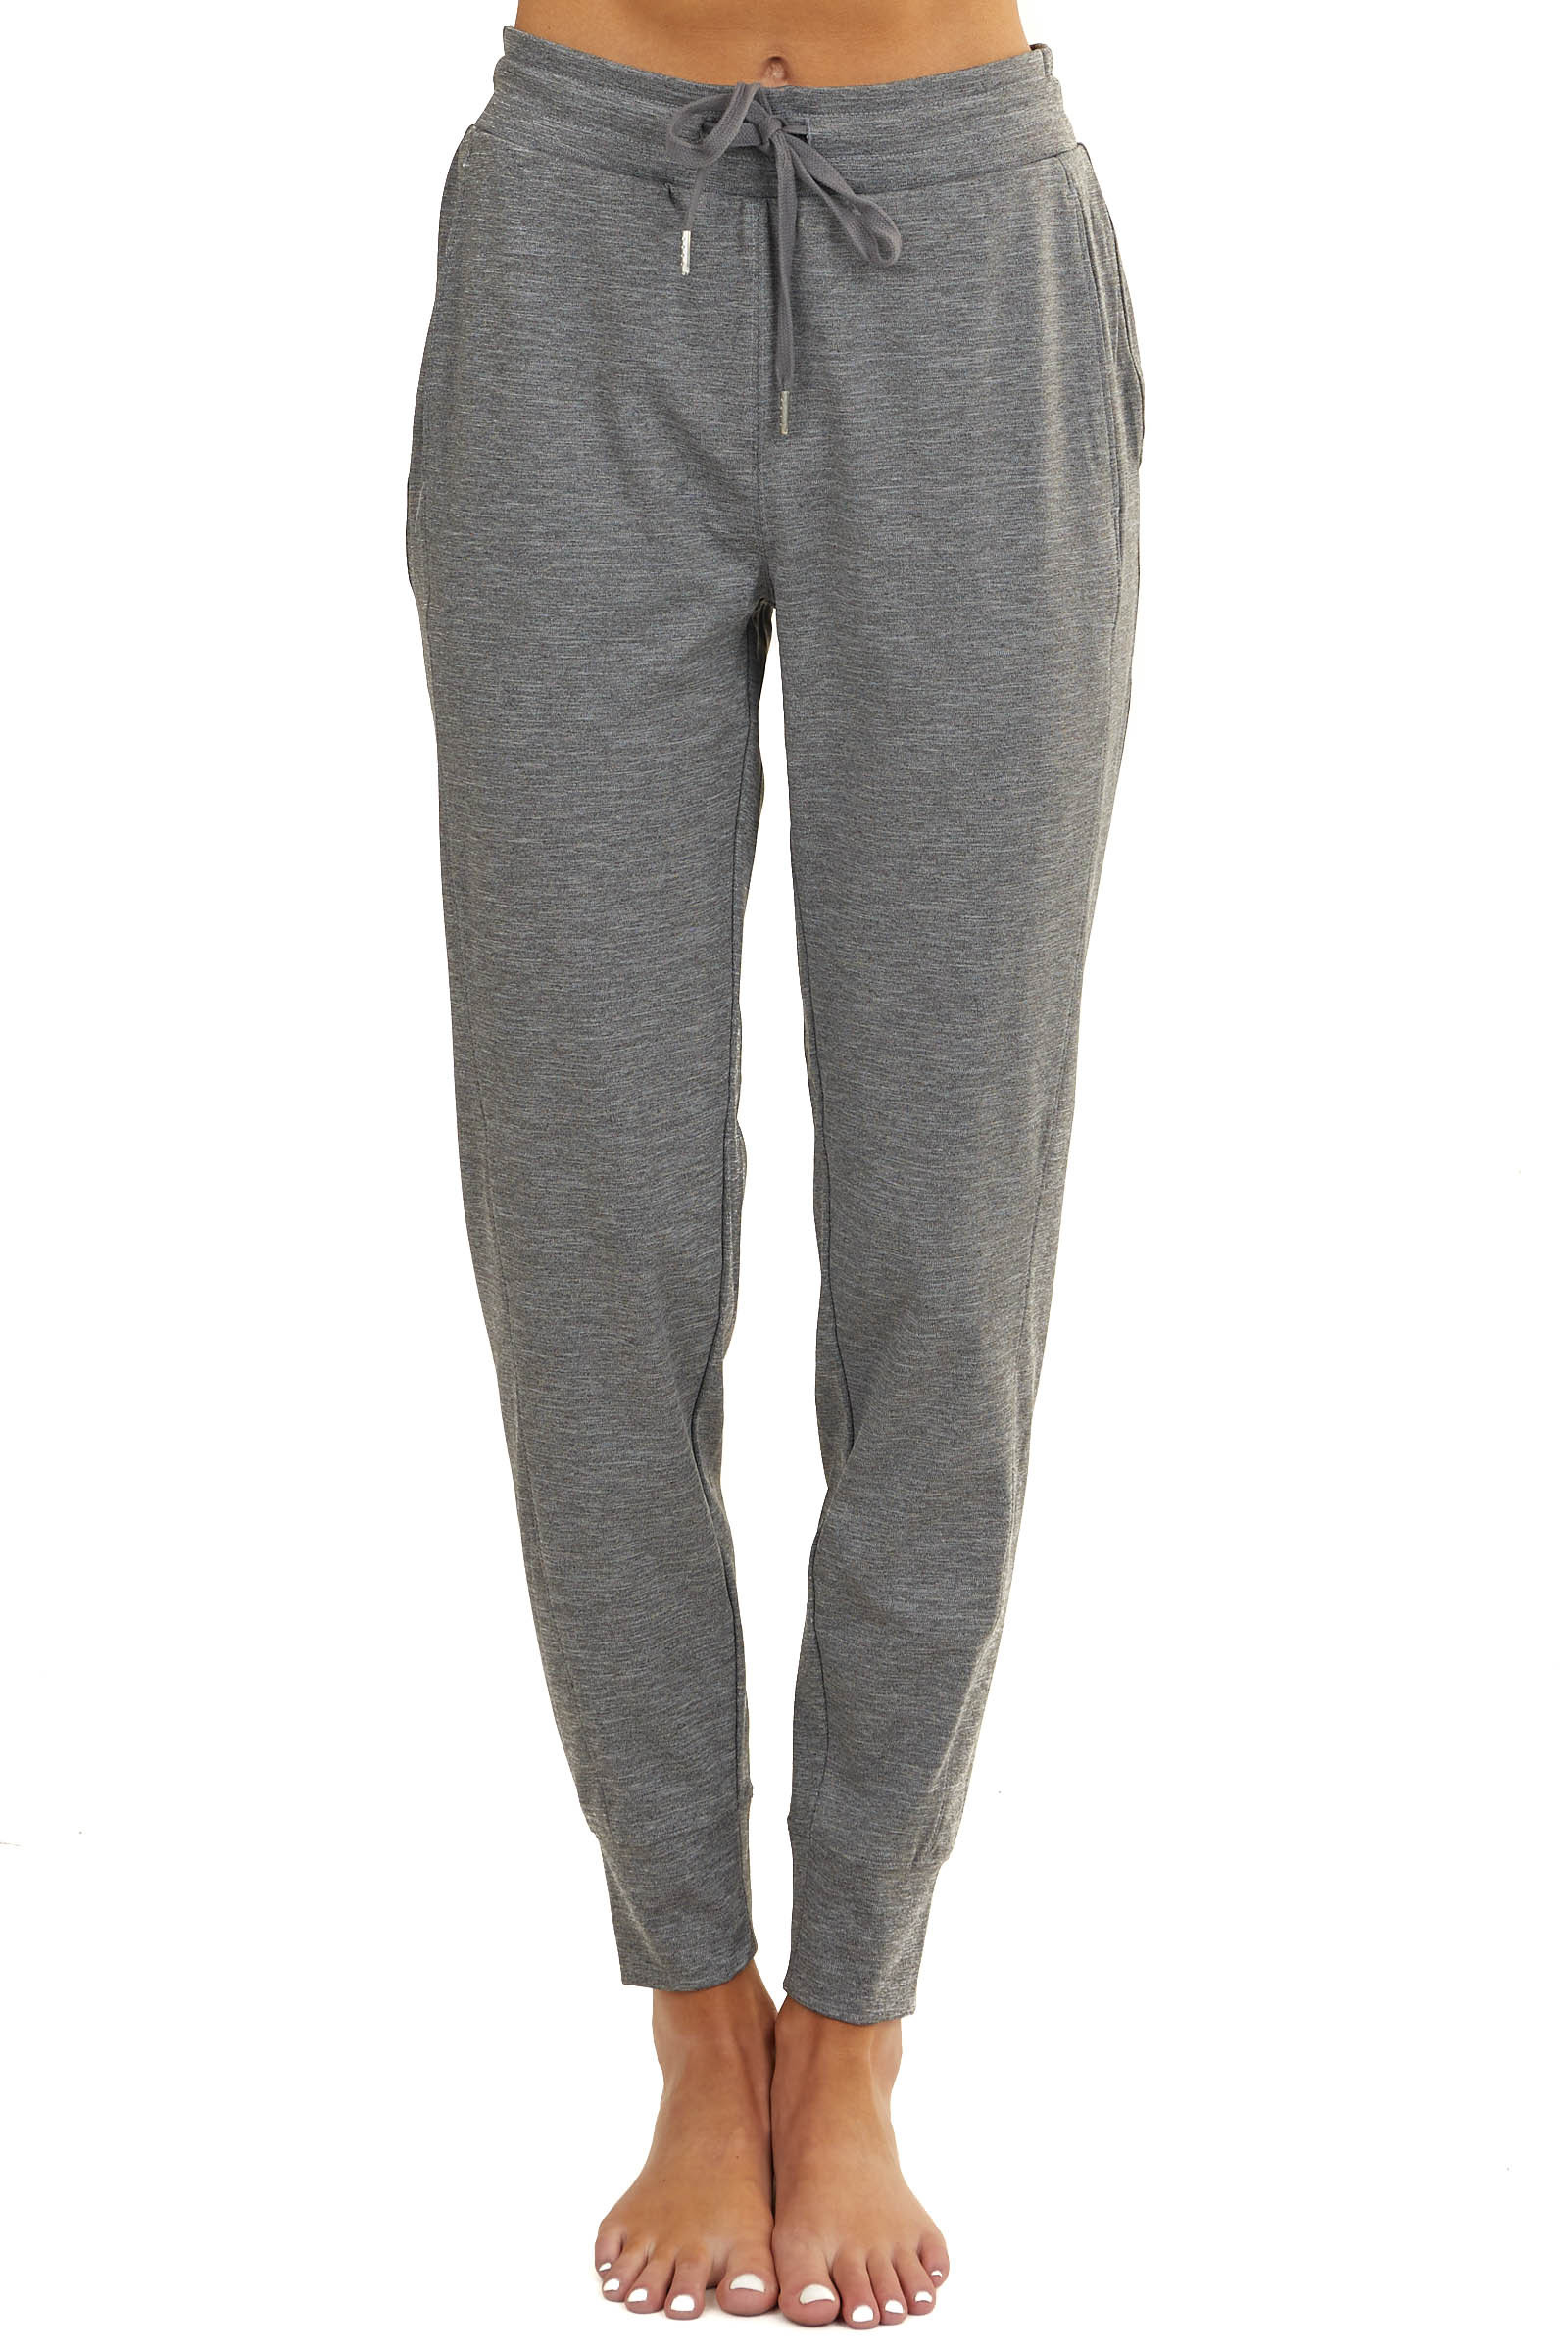 Stormy Side Paneled Joggers with Drawstring and Side Pockets